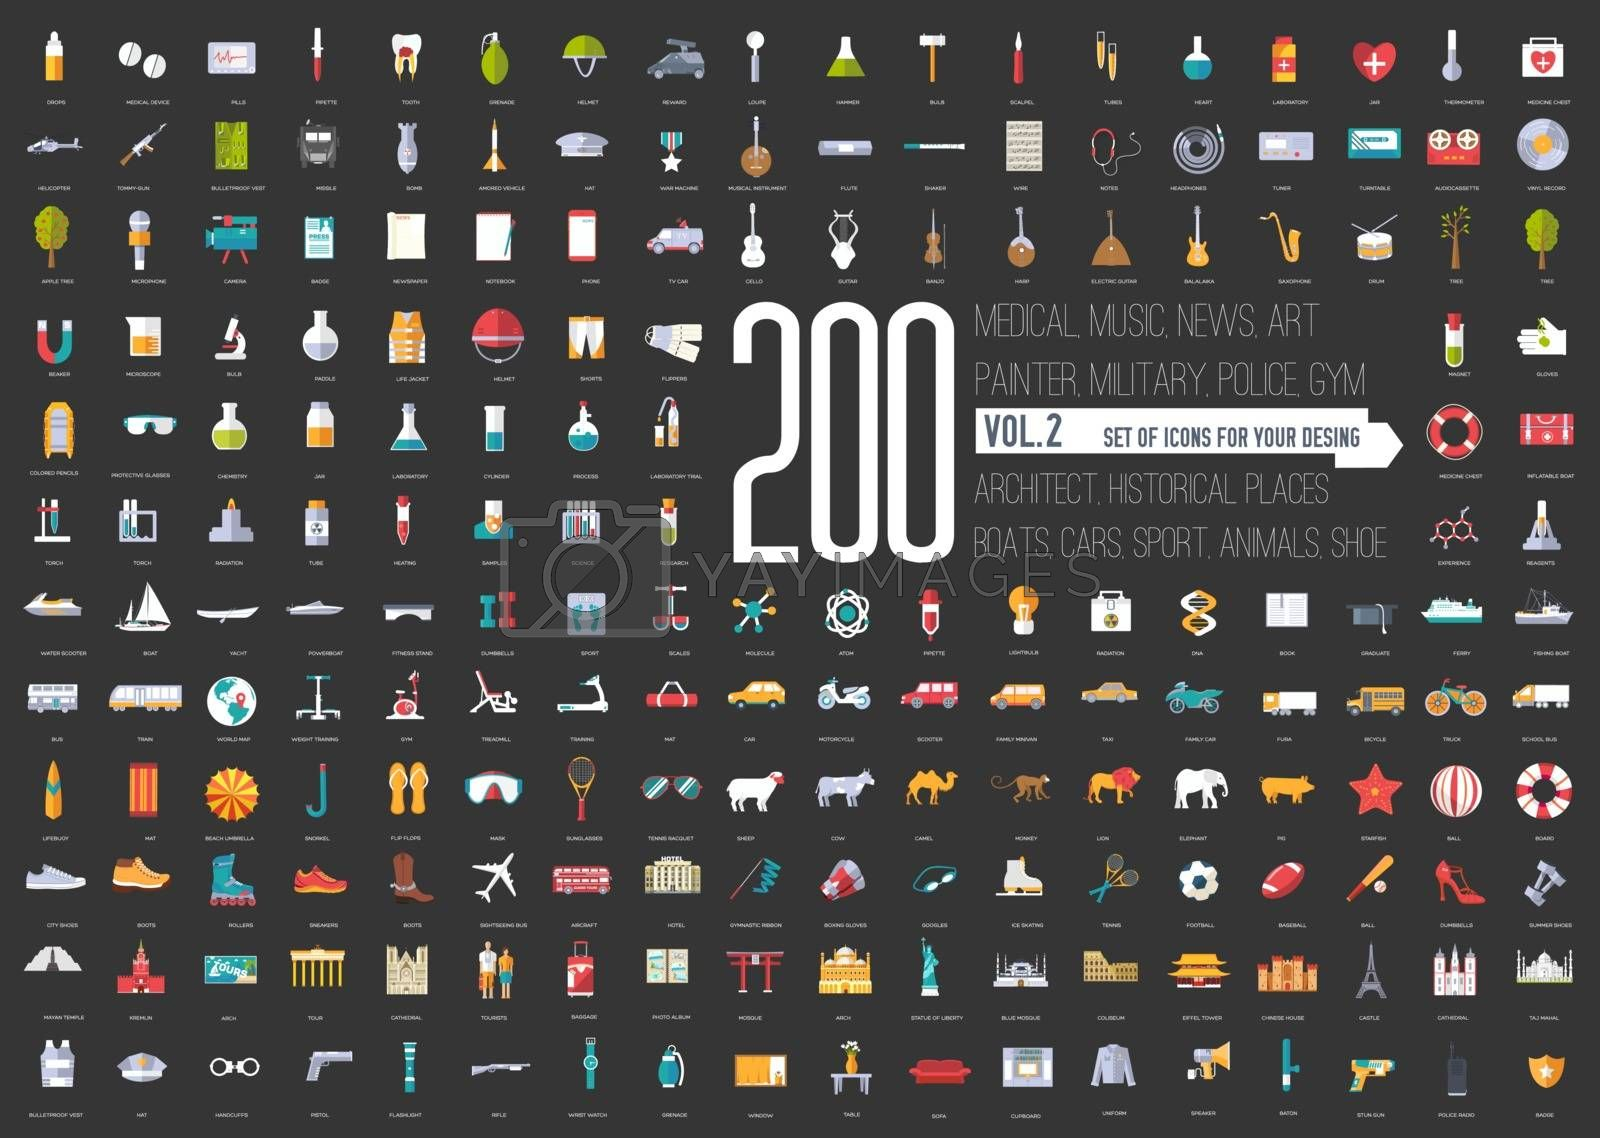 Flat big collection set icons of medical, army, war, shoe, nature, news, draw, police, rafting, room, science, boat sport gym car animal summer tool country For infographic illustration